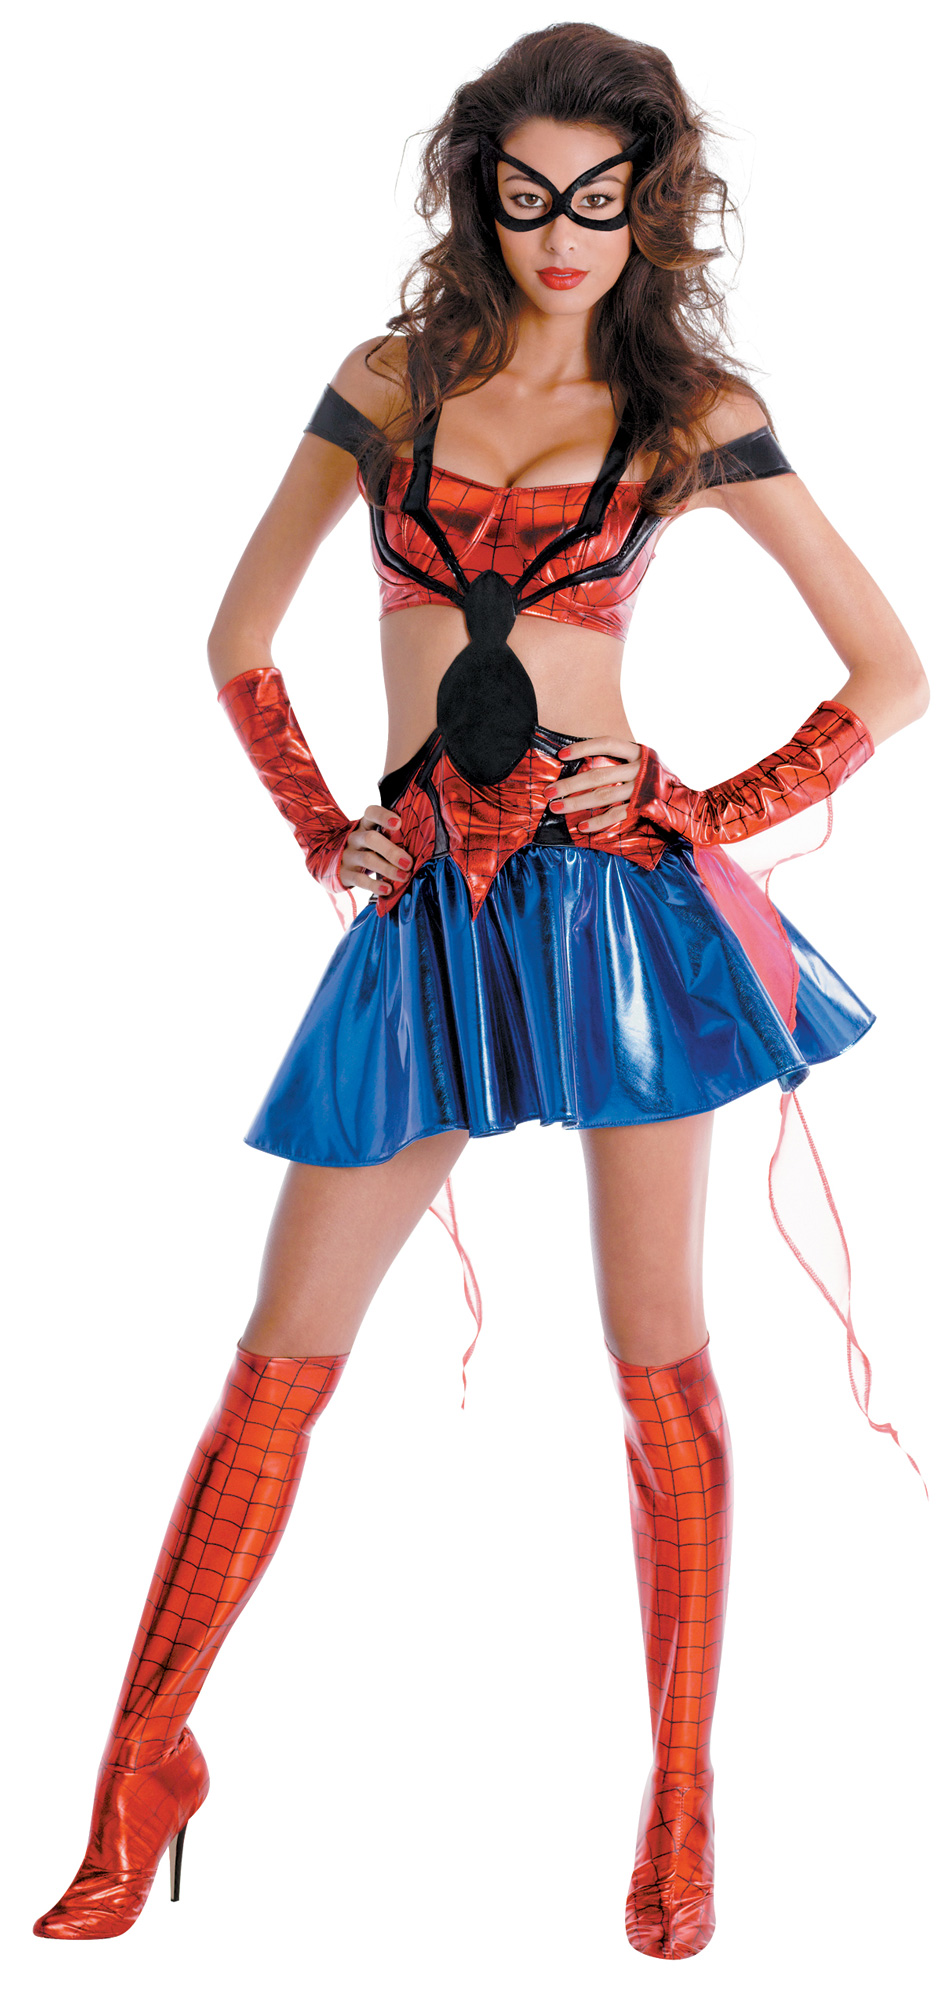 Women's Spider-Girl Sassy Prestige Adult Costume - Red - Medium (8-10) BS-179217